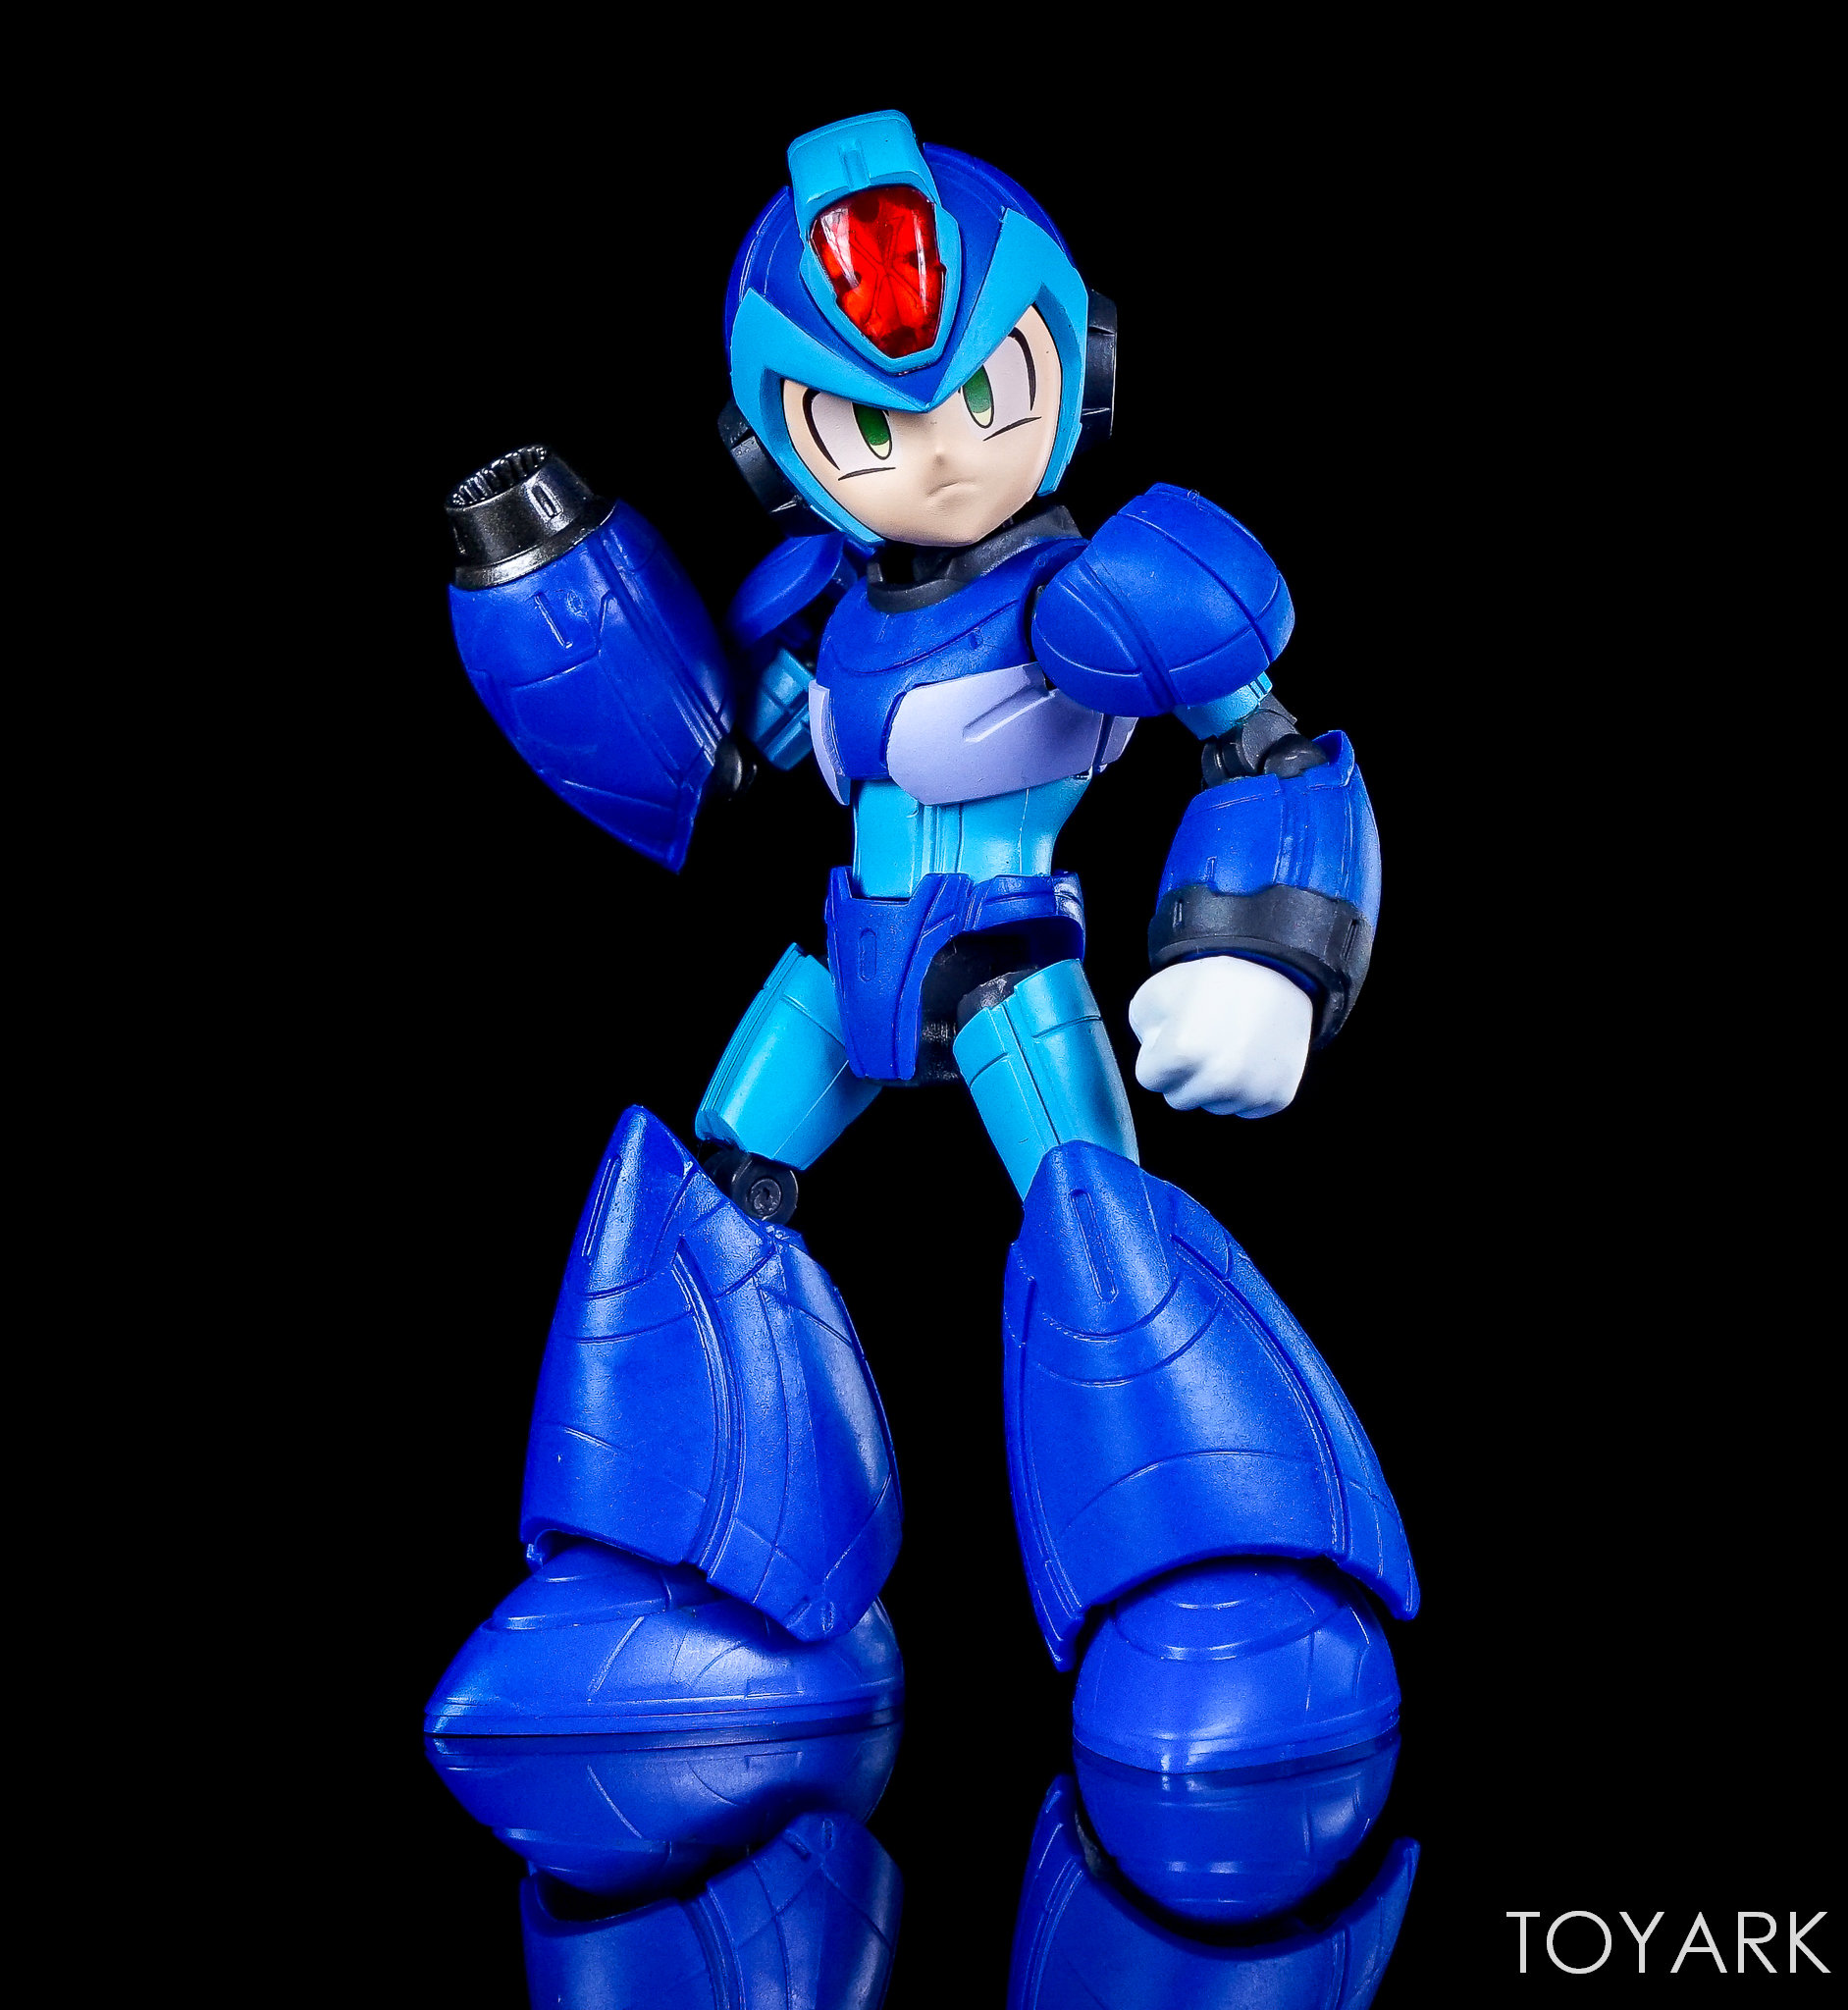 http://news.toyark.com/wp-content/uploads/sites/4/2017/11/Mega-Man-X-NX-Edge-Style-006.jpg